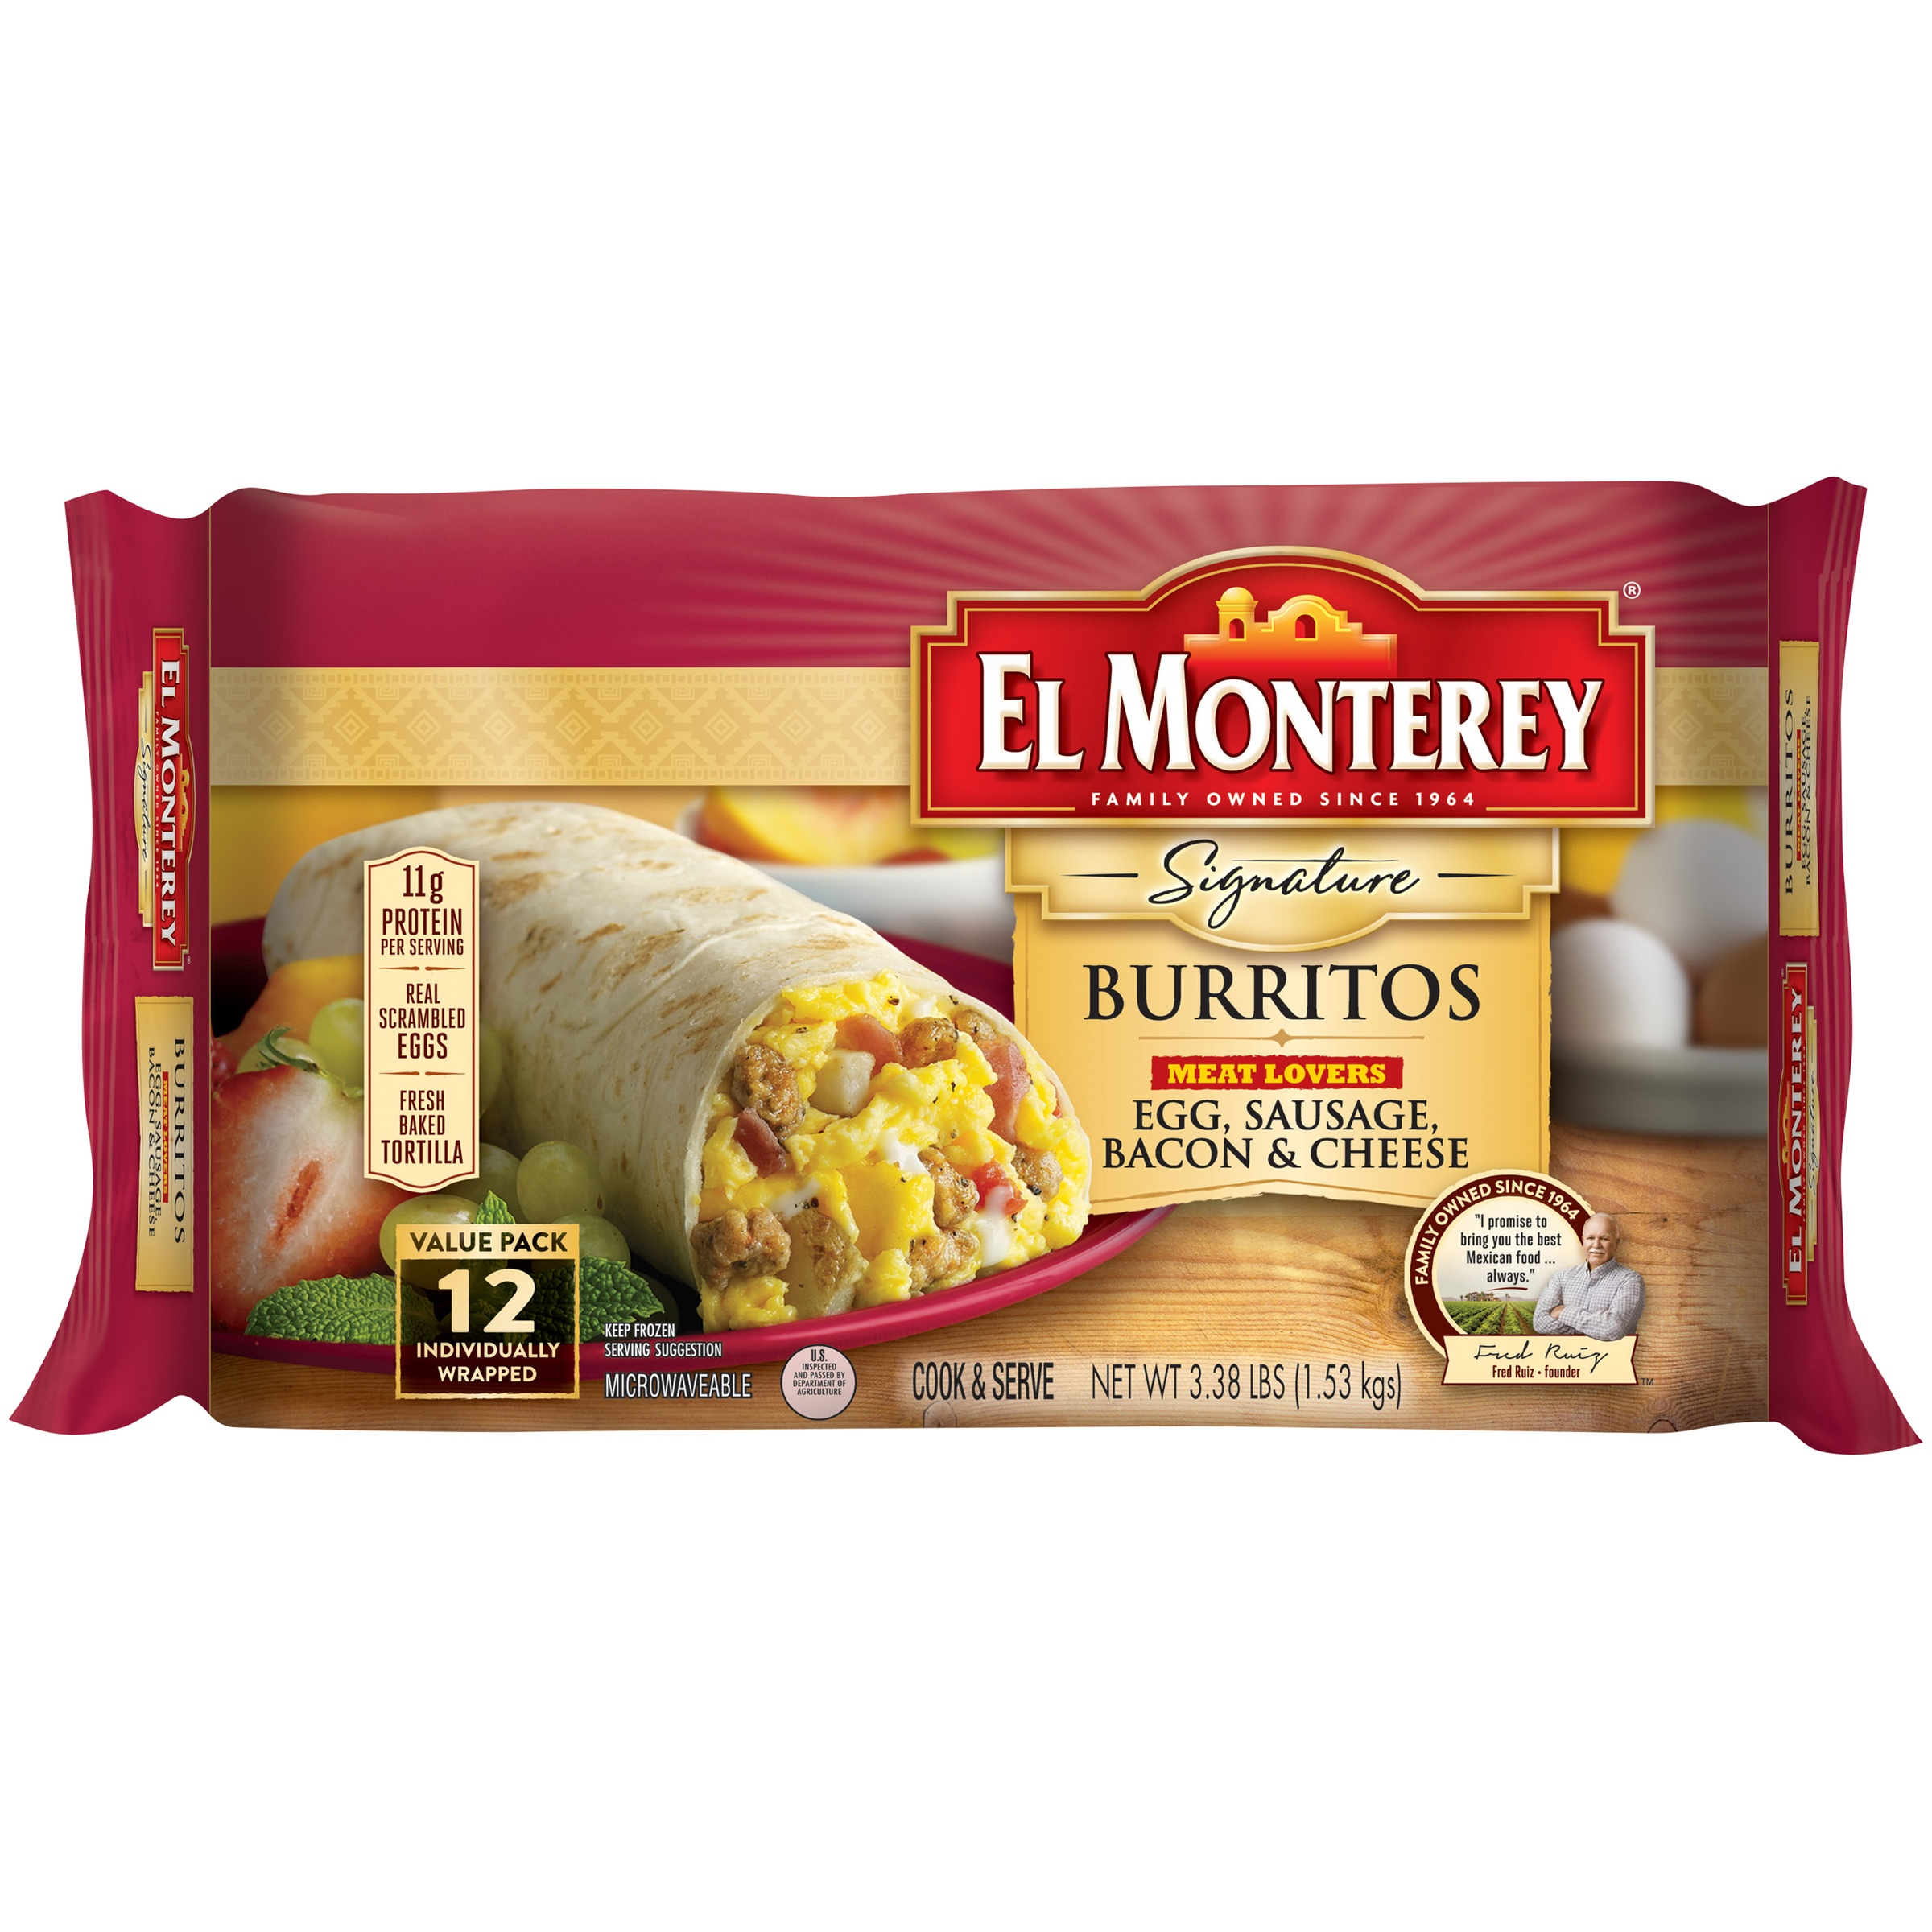 El Monterey® Signature Meat Lovers Egg, Sausage, Bacon & Cheese Burrito 12 ct Bag